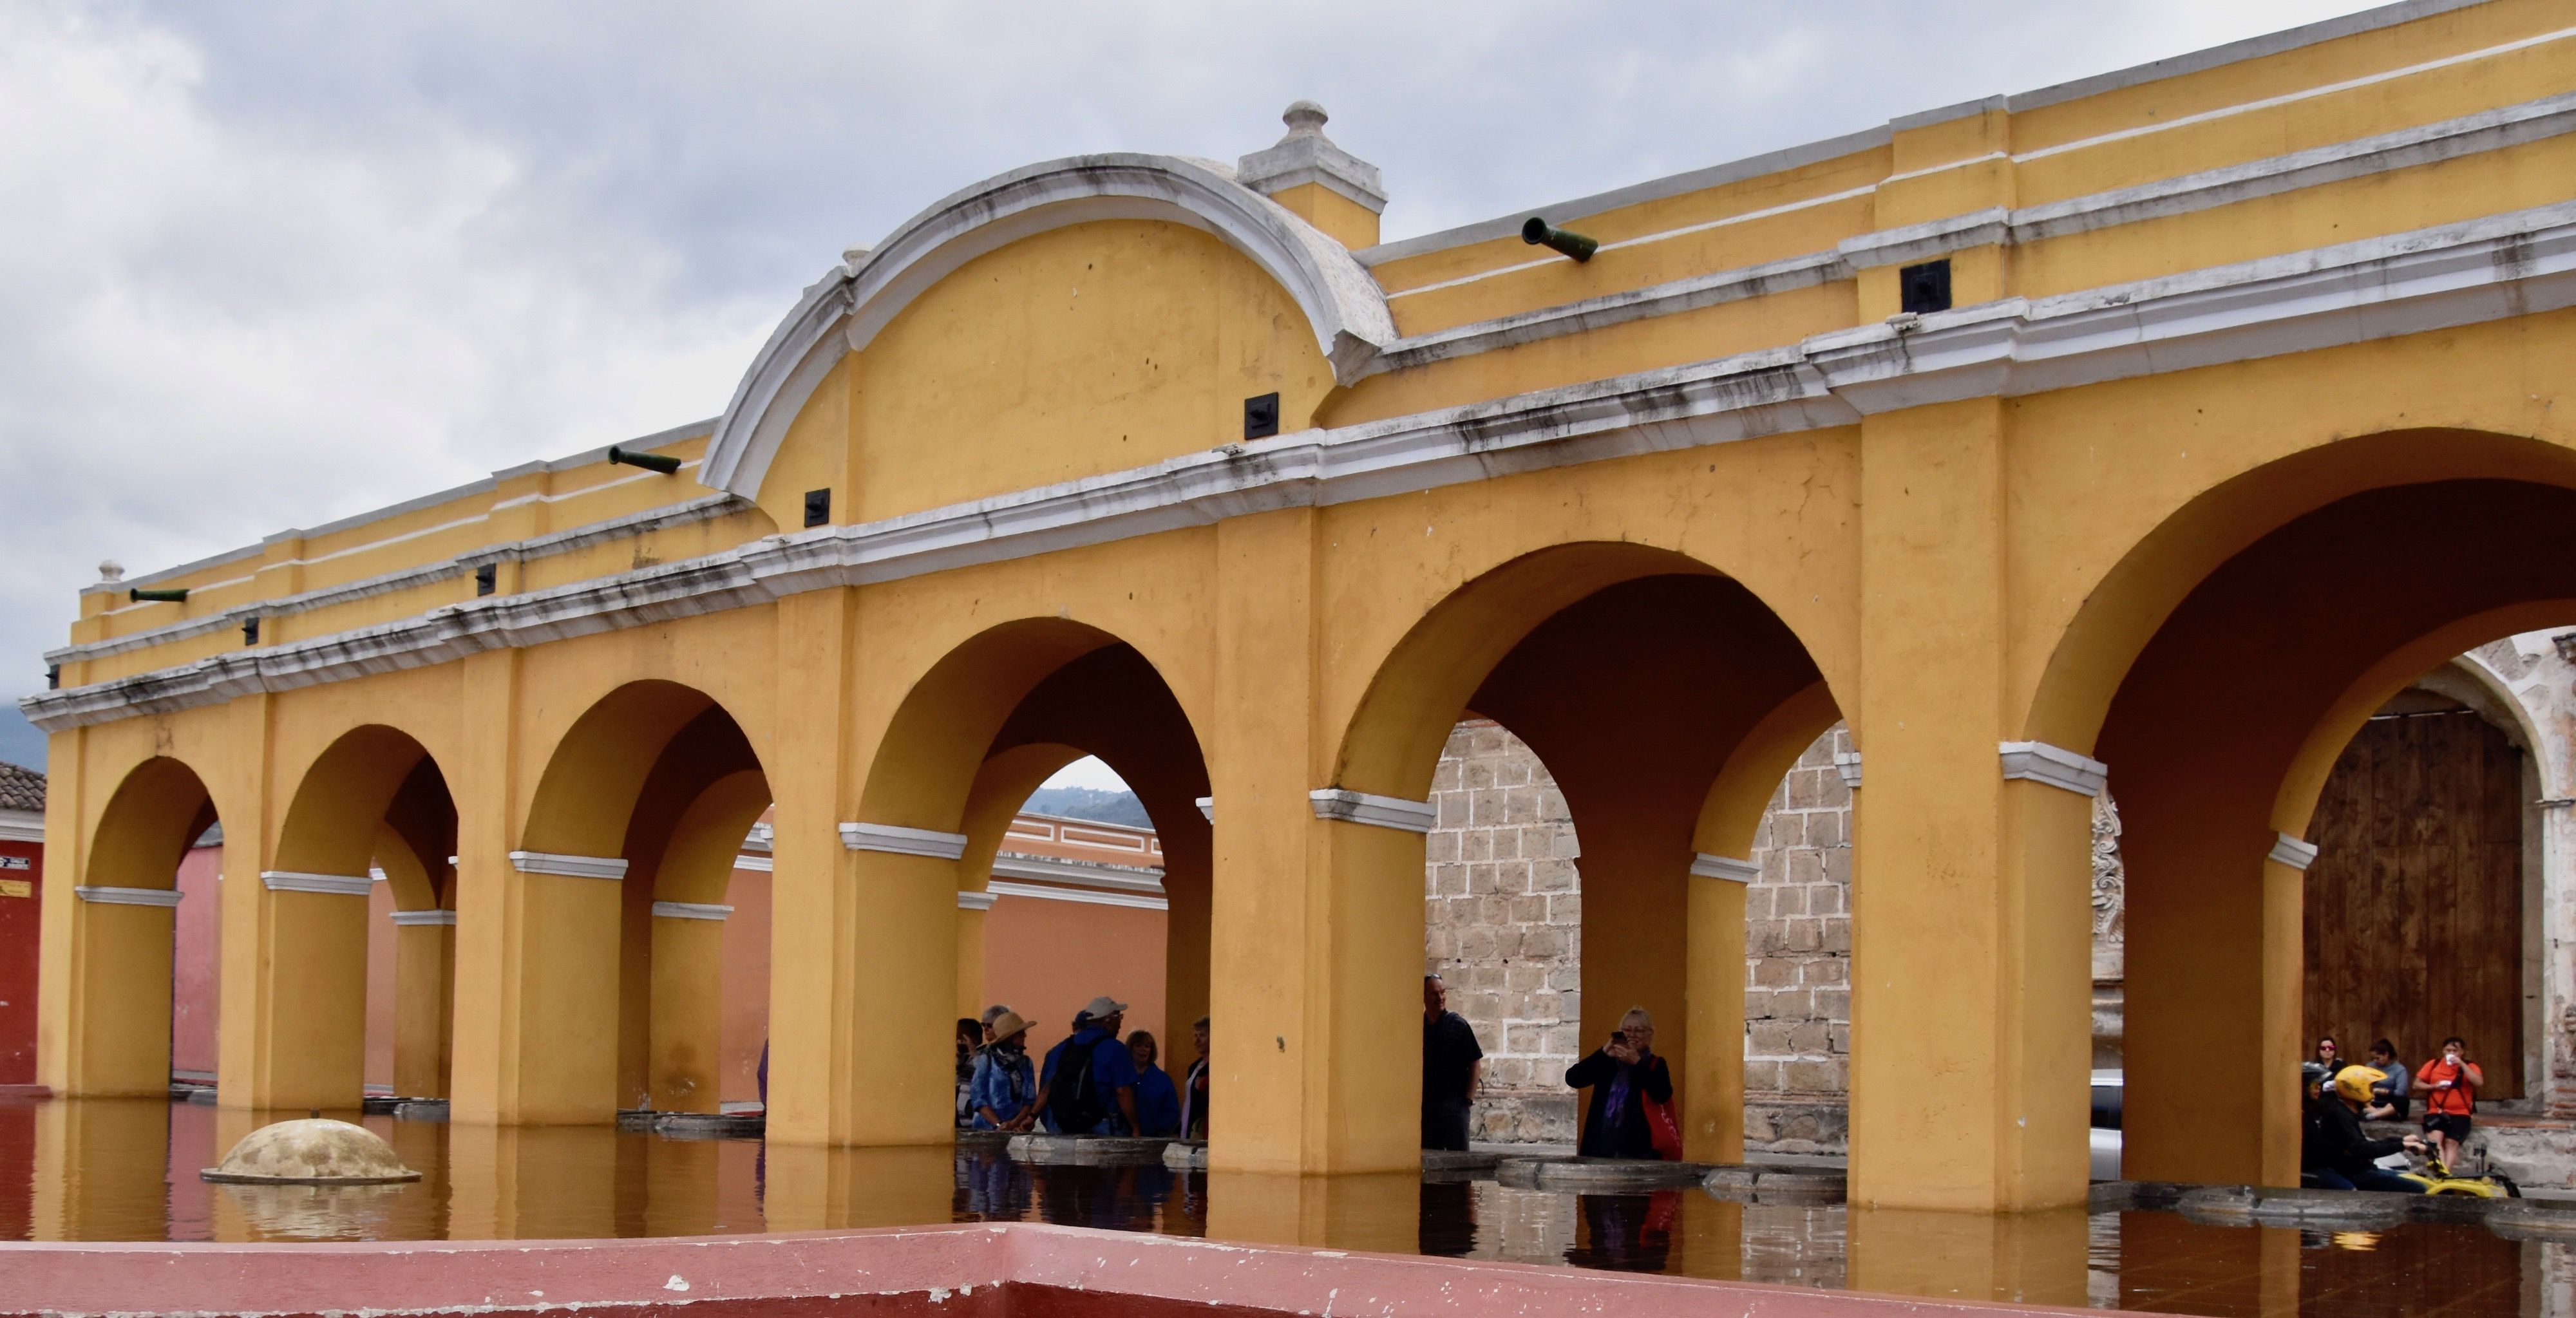 Public Washing Space, Antigua, Guatemala